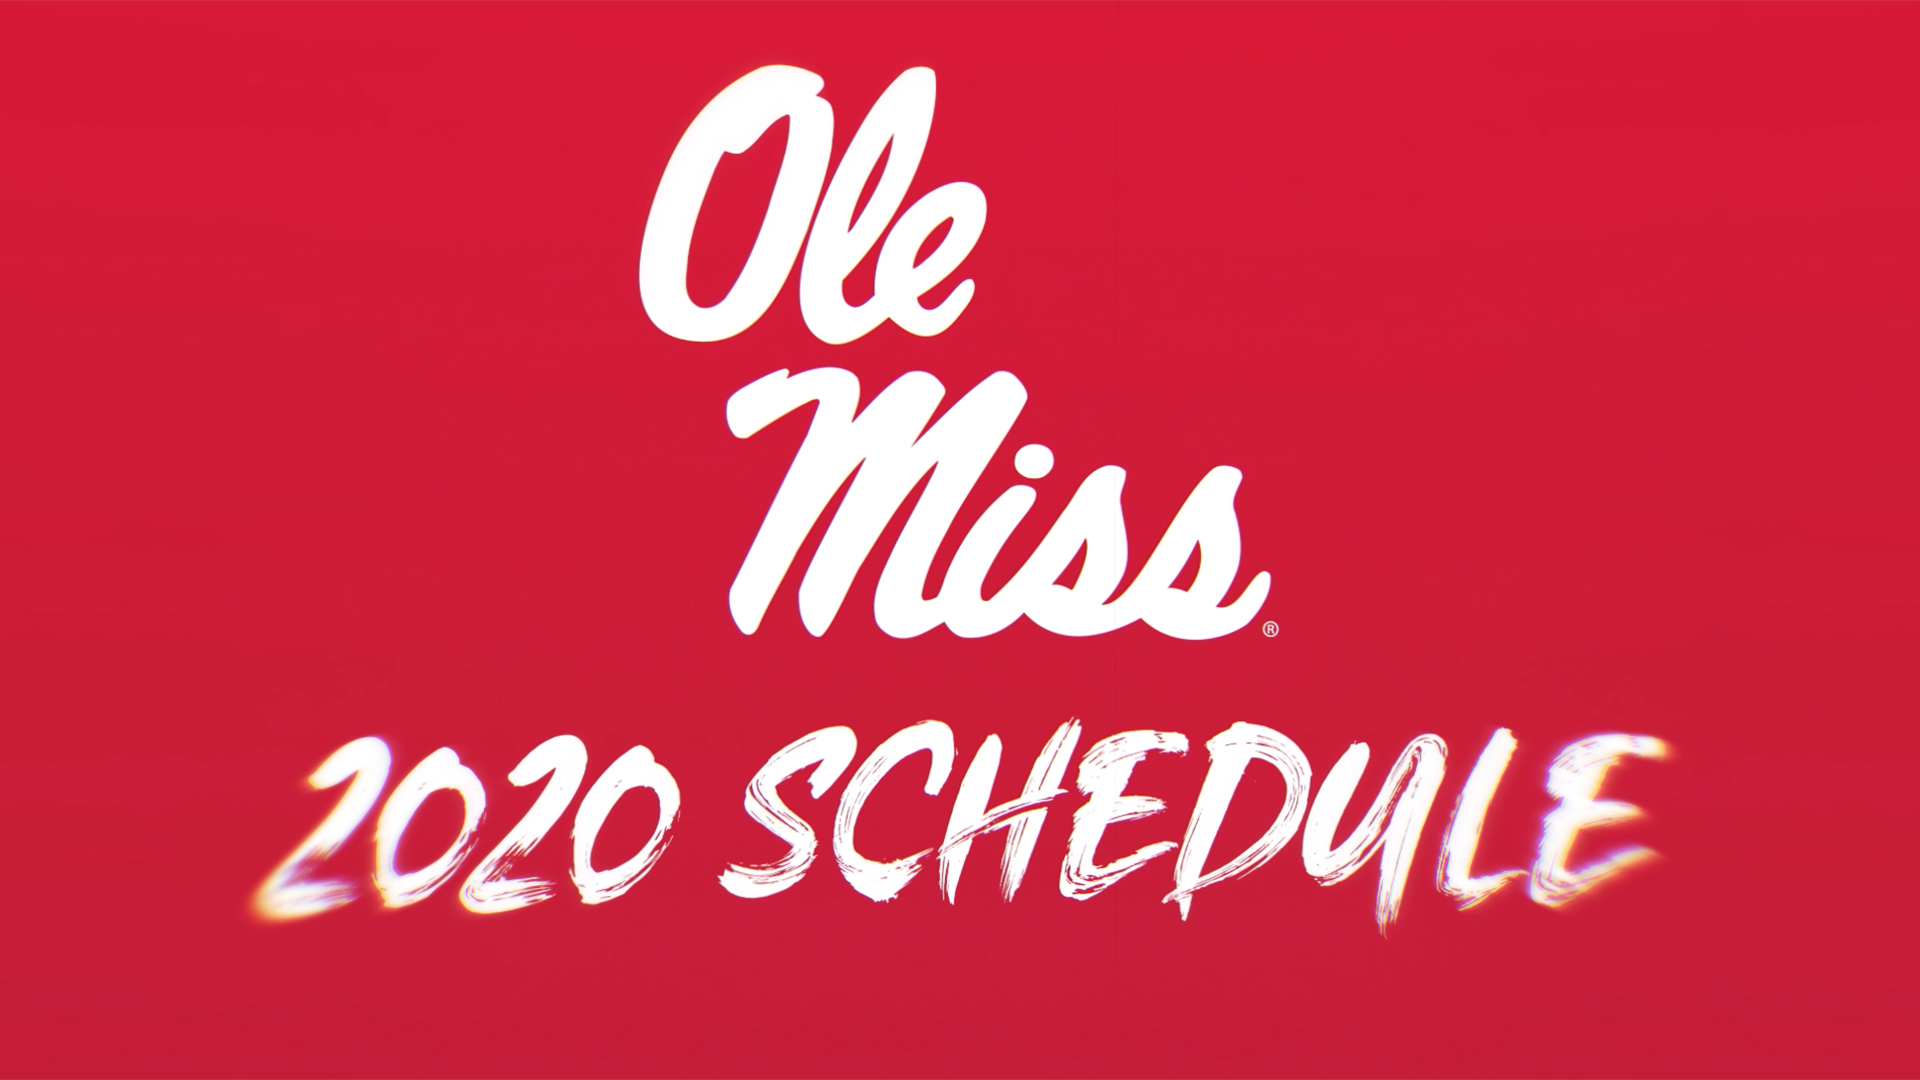 Ole Miss Football Schedule 2020.Football Announces 2020 Schedule Ole Miss Athletics